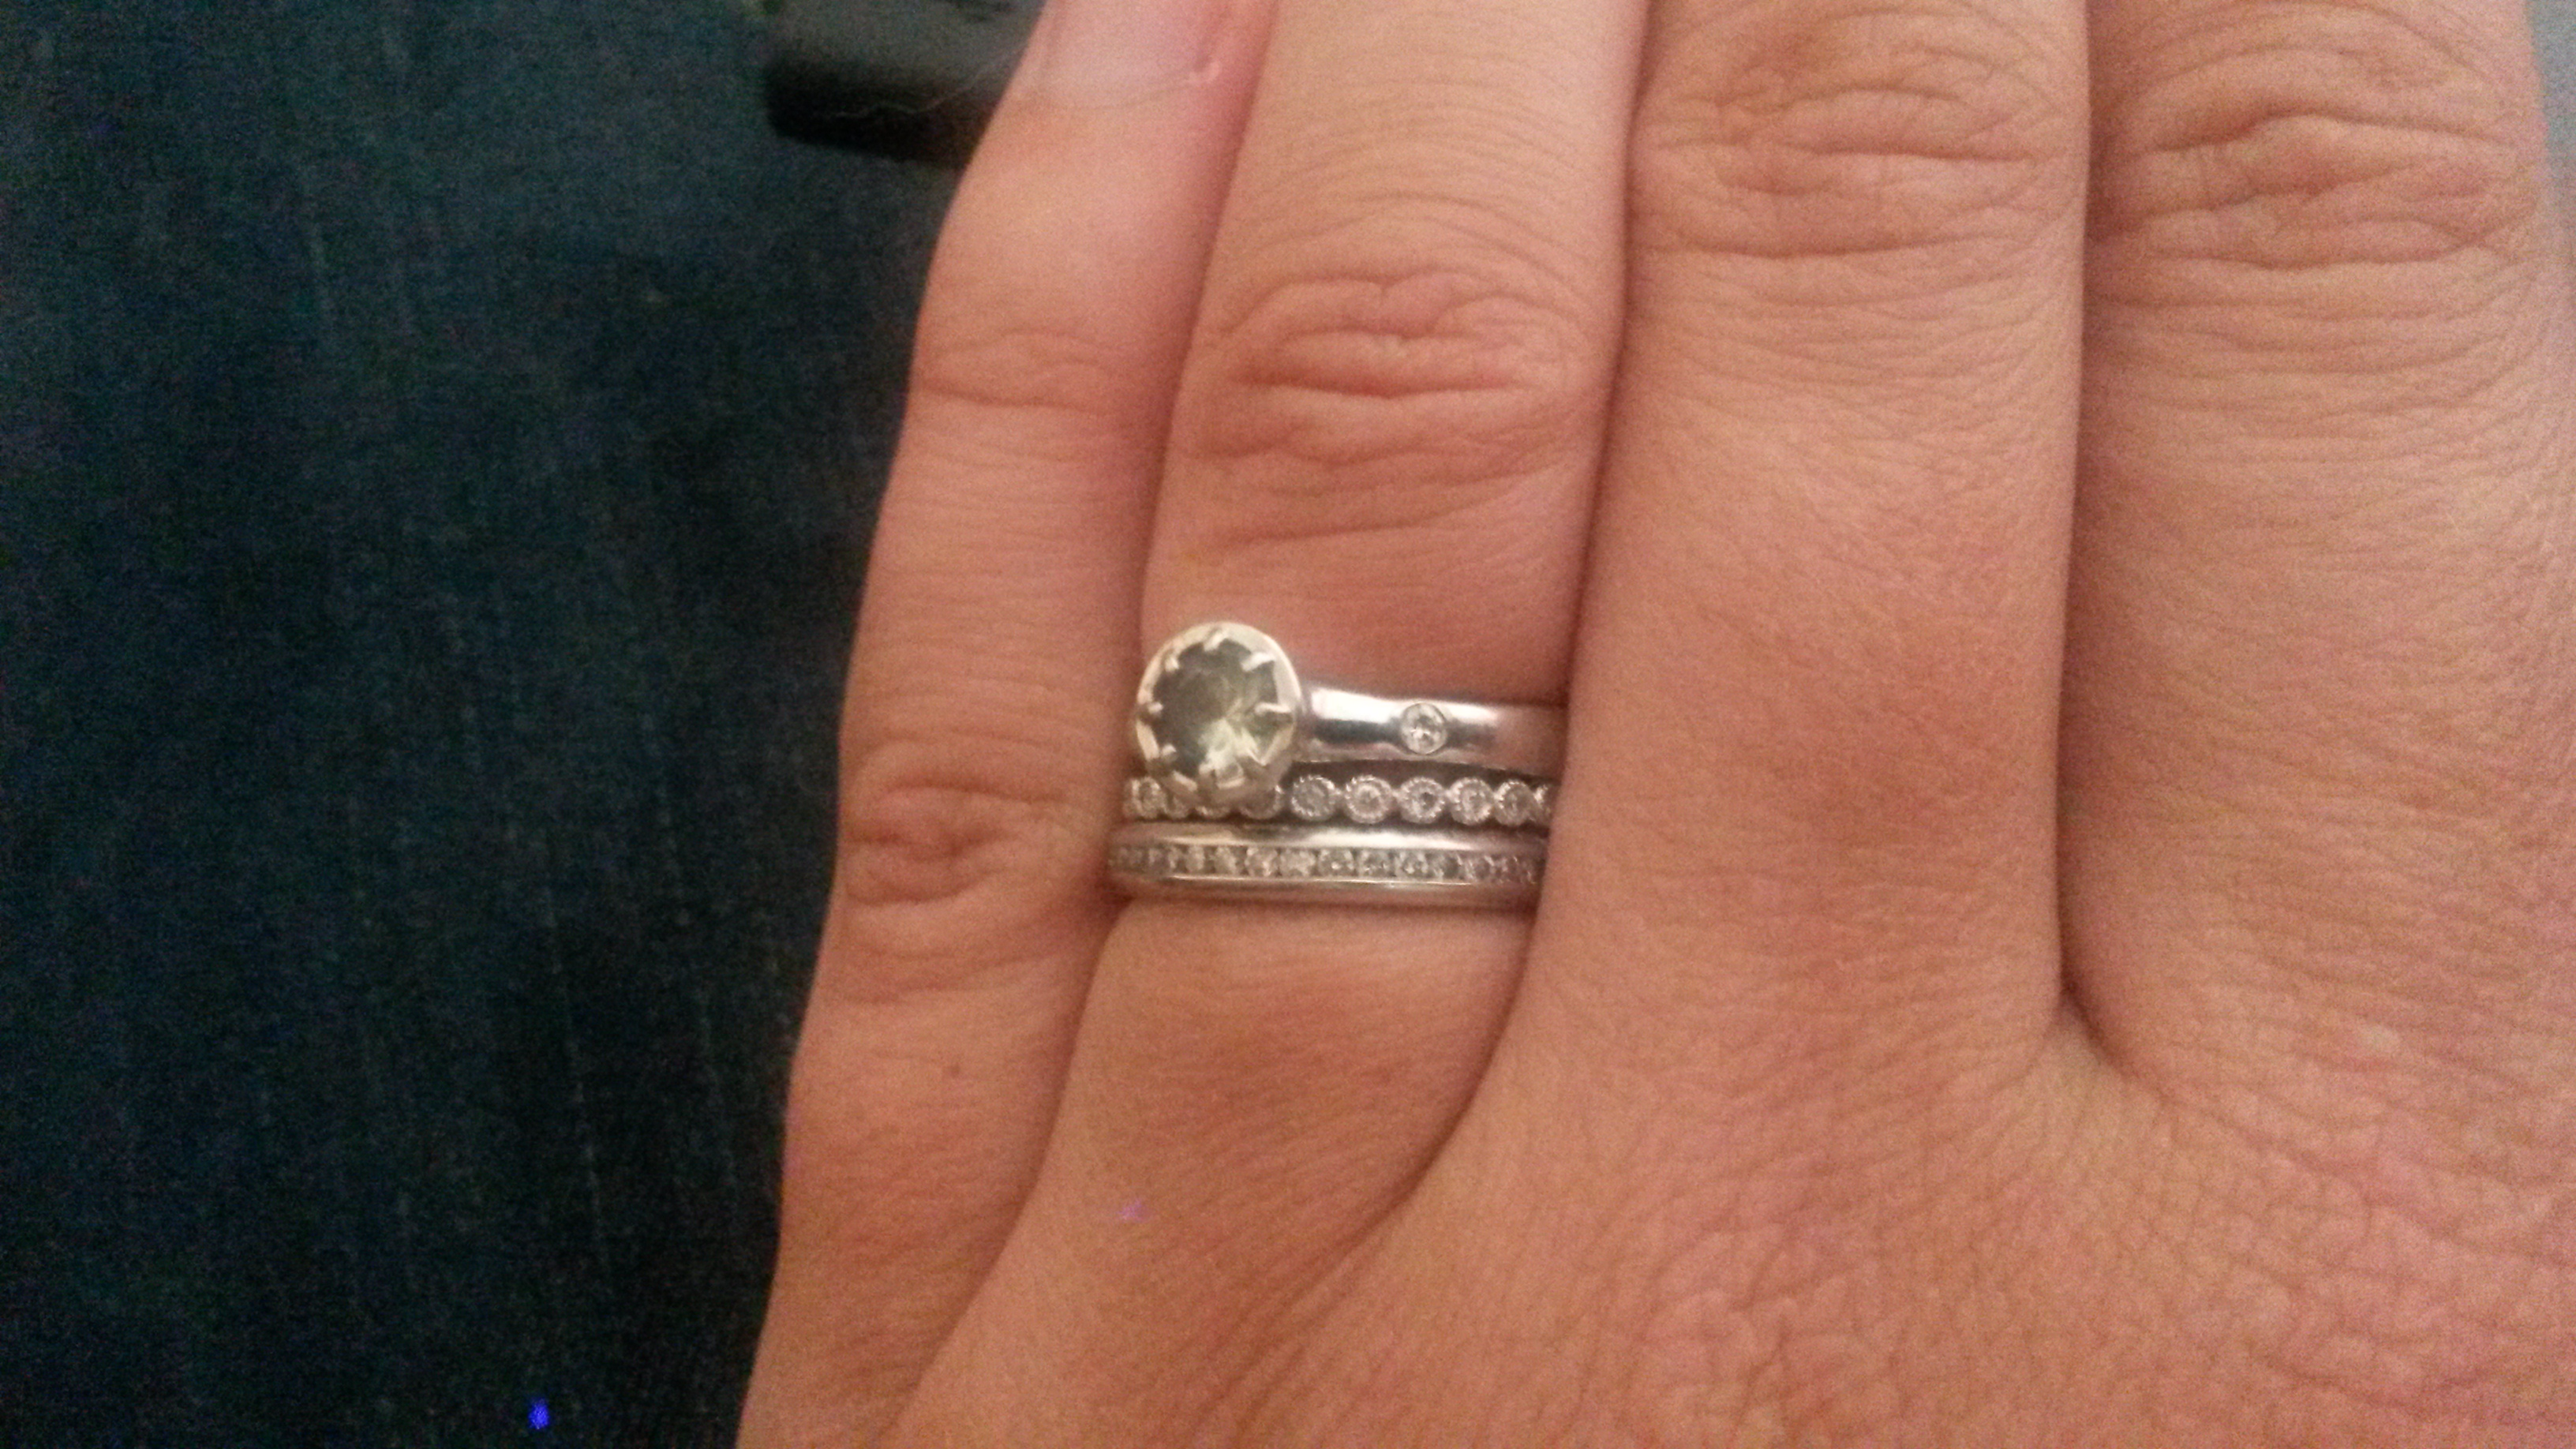 show me your unique diamond wedding bands and stacks etsy wedding bands I got both bands vintage off etsy for really good prices I know it makes a lot of people nervous to shop online